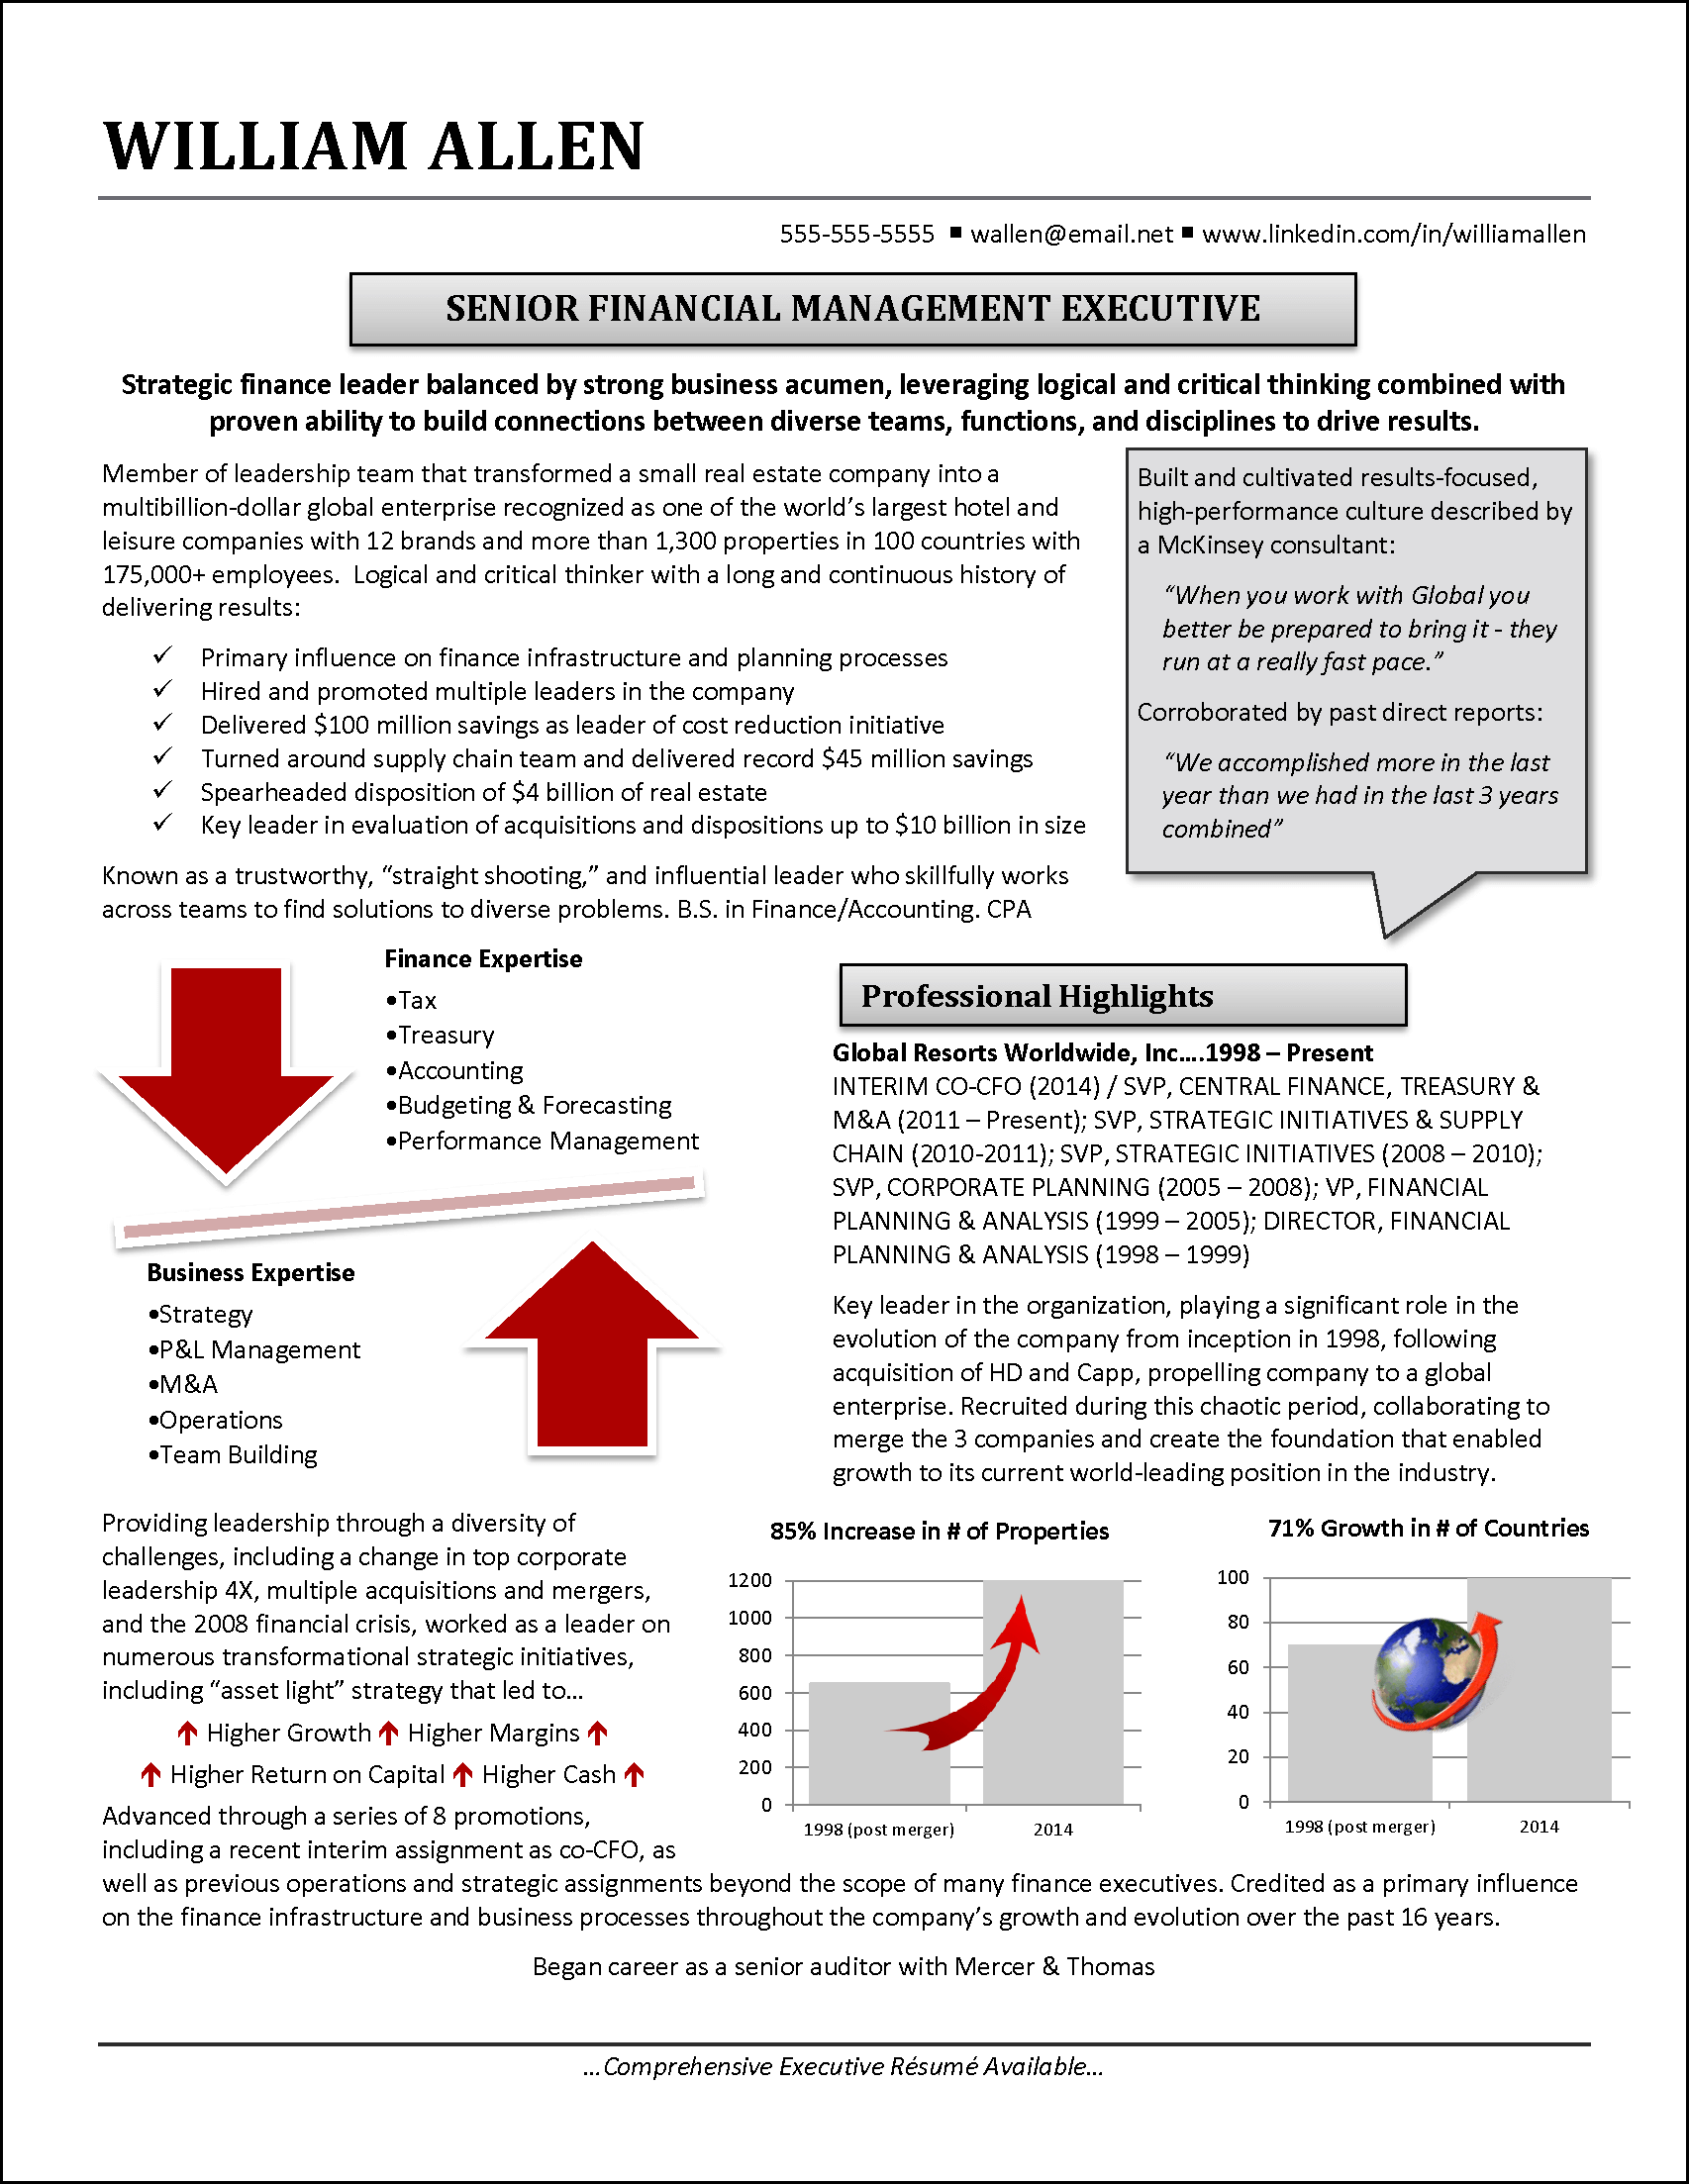 financial mgmt exec png infographic resume example for financial executive